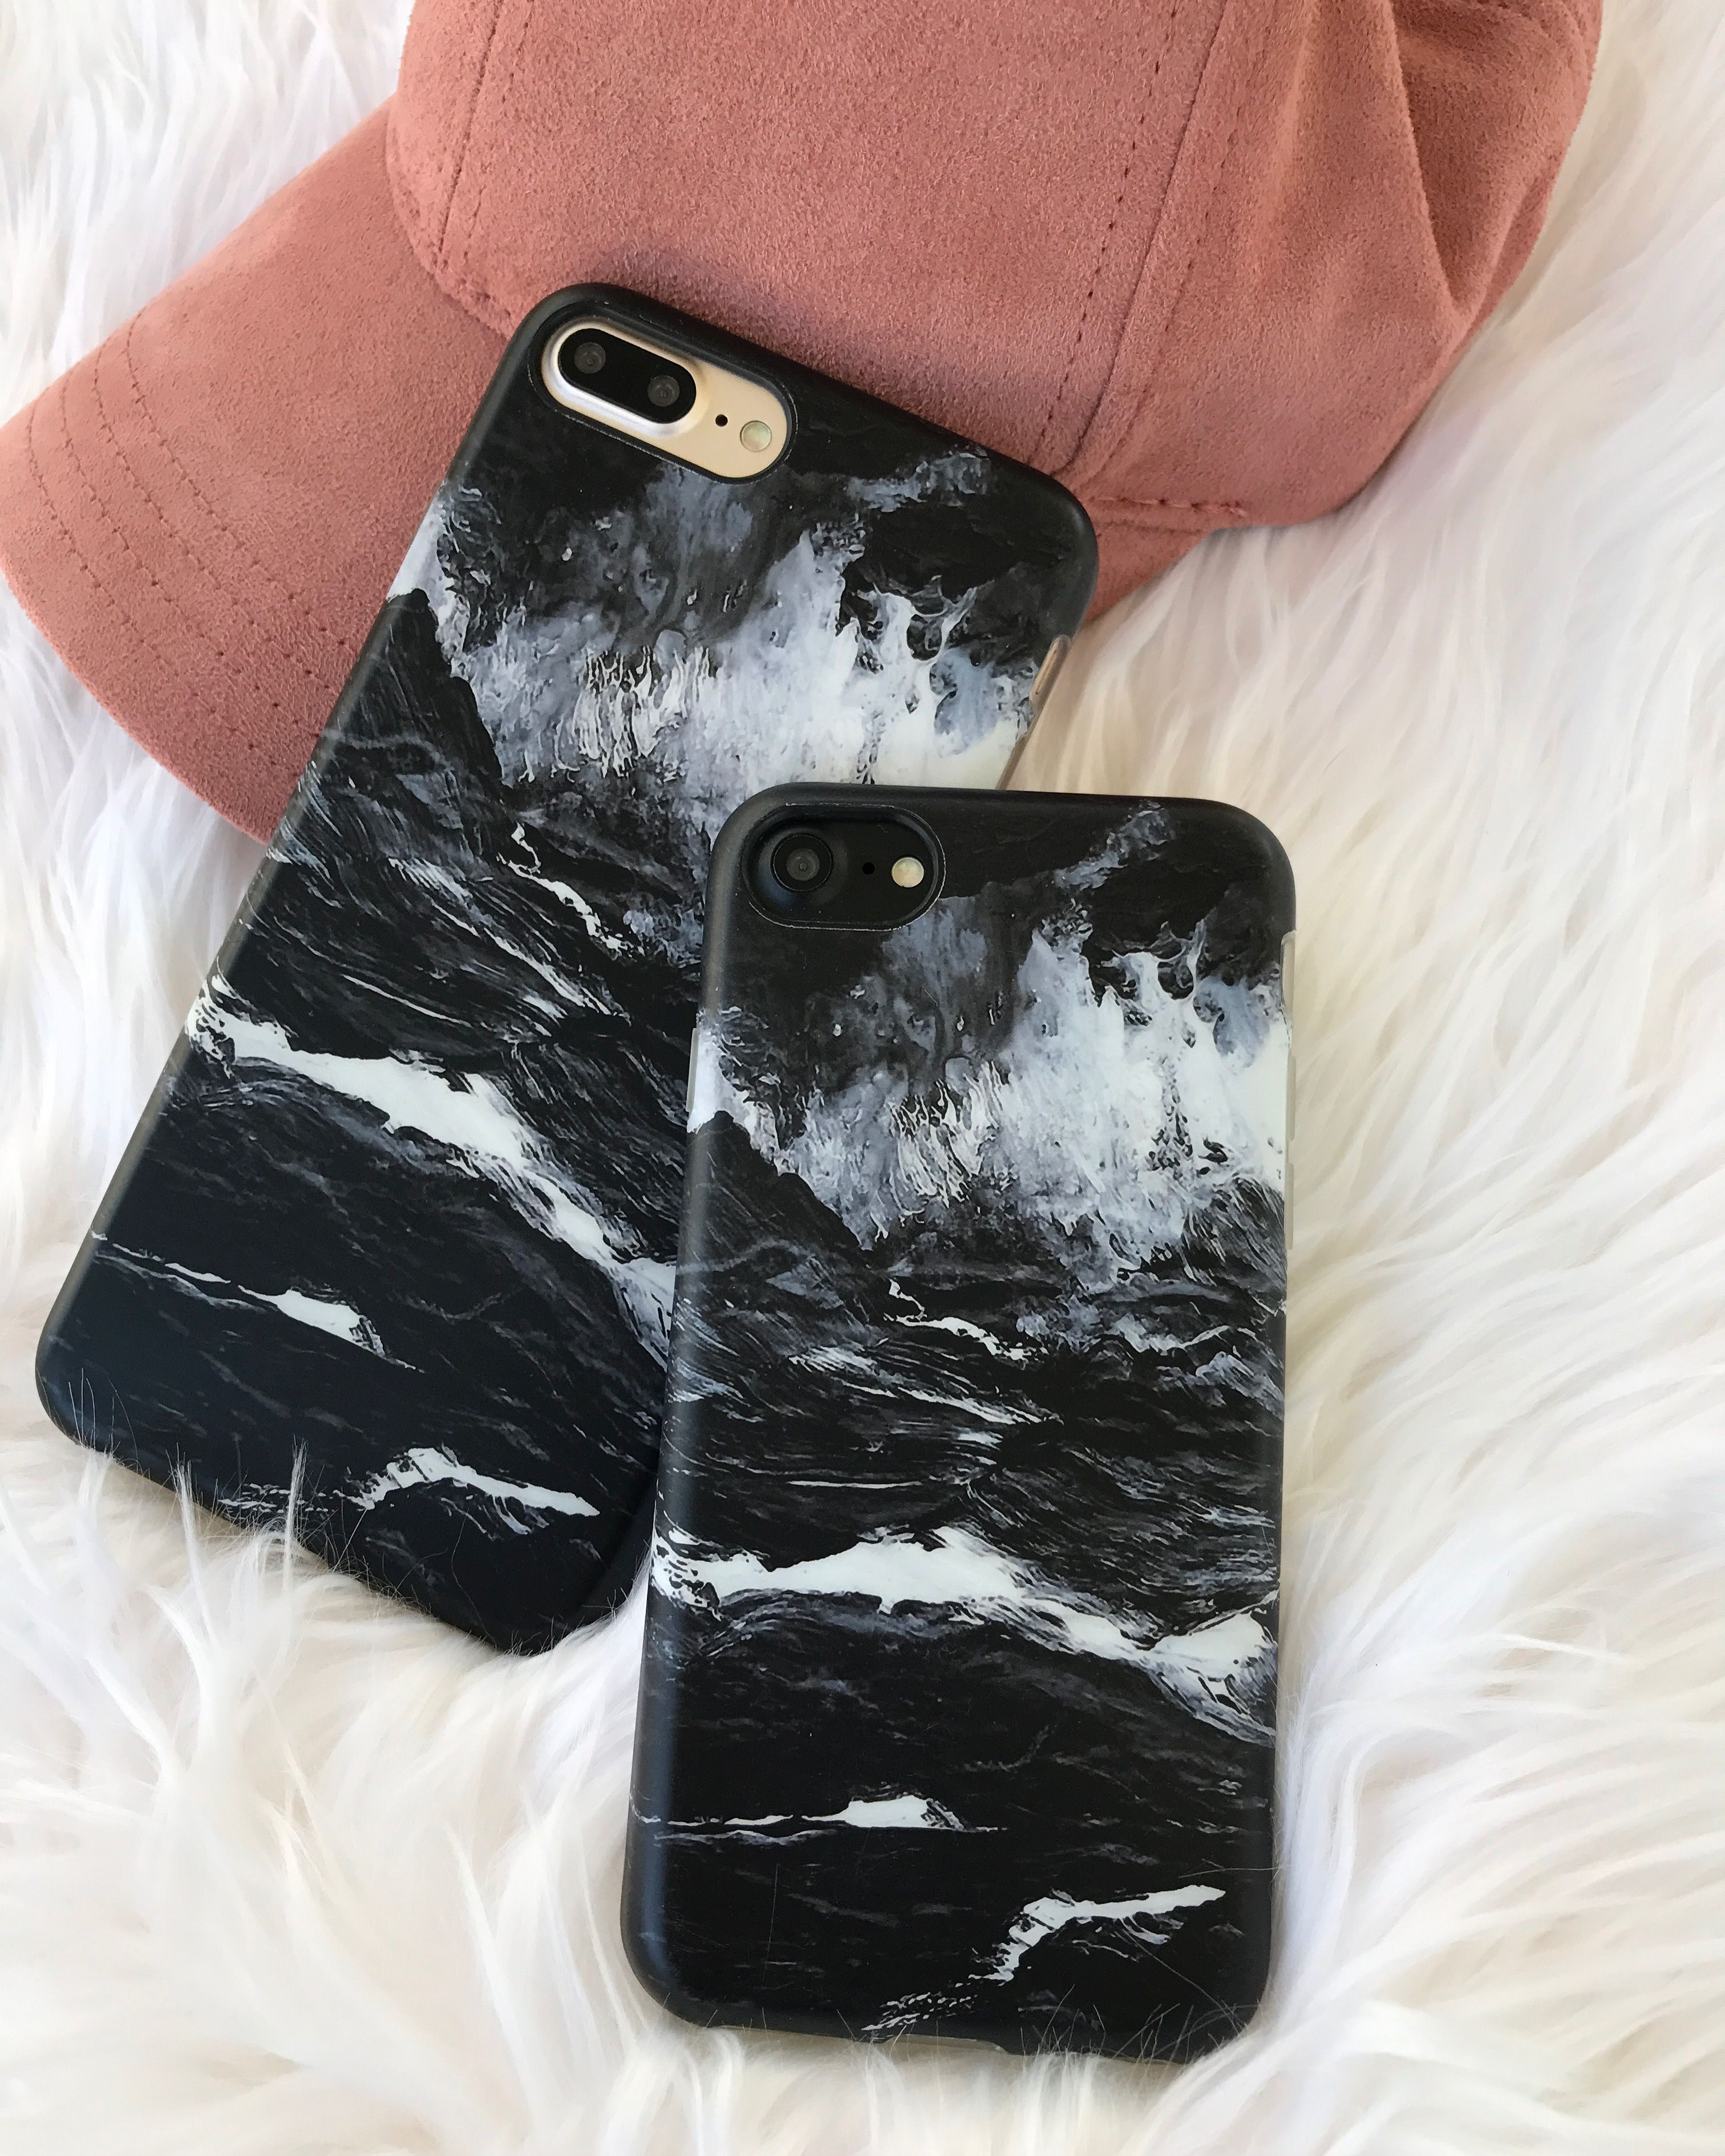 Black On Black Or Black On Gold Shop The Black Marble Case For Iphone 7 Iphone 7 Plus From Elemental Cases Diy Phone Case Cute Phone Cases Girl Phone Cases